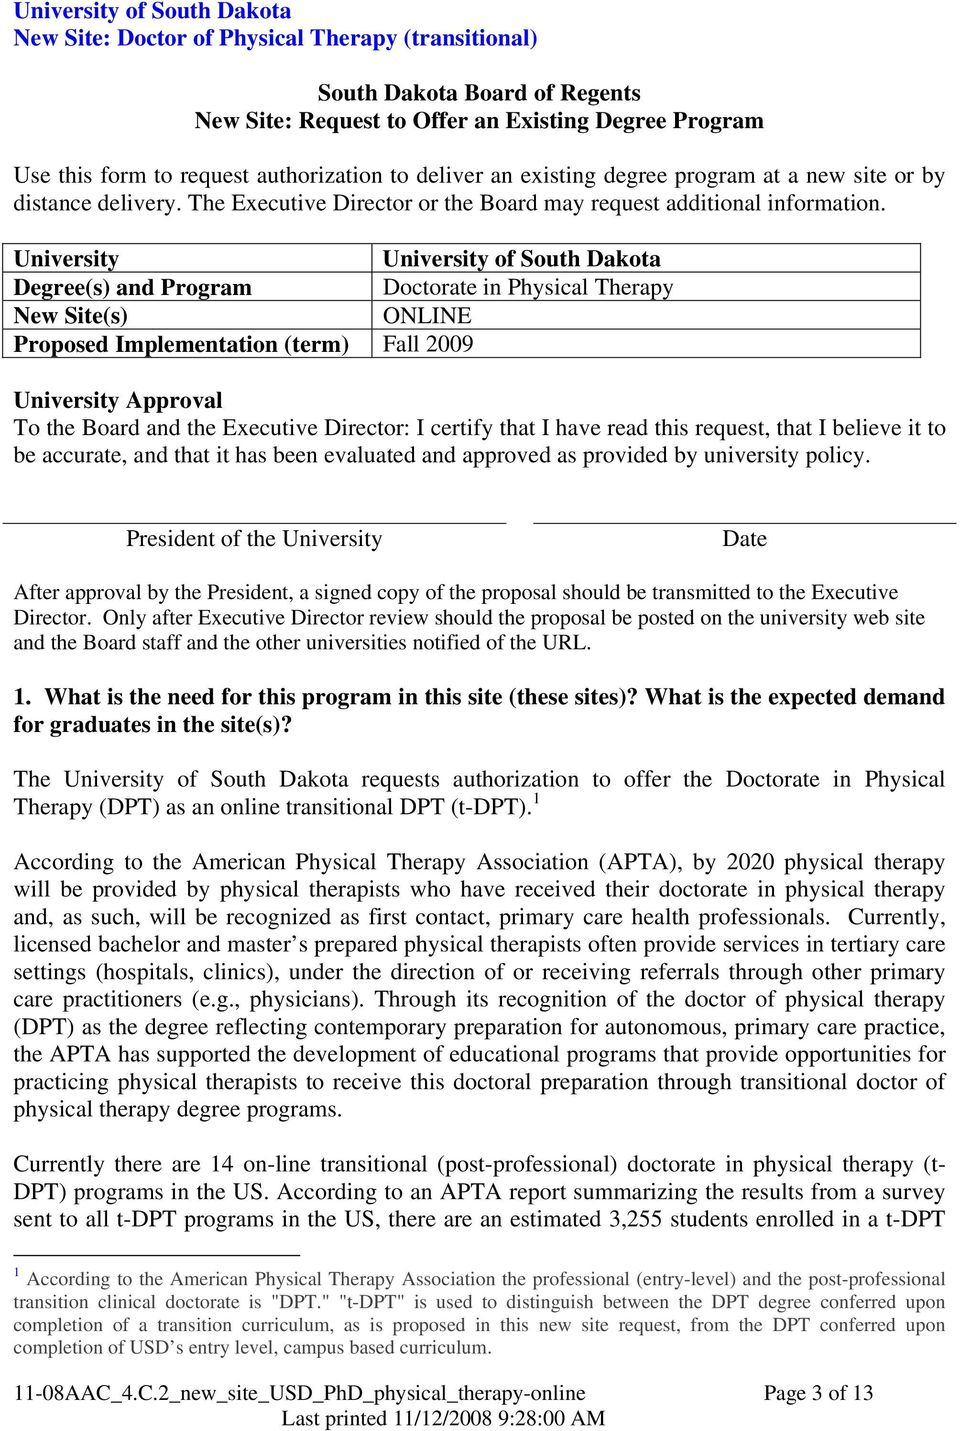 University University of South Dakota Degree(s) and Program Doctorate in Physical Therapy New Site(s) ONLINE Proposed Implementation (term) Fall 2009 University Approval To the Board and the